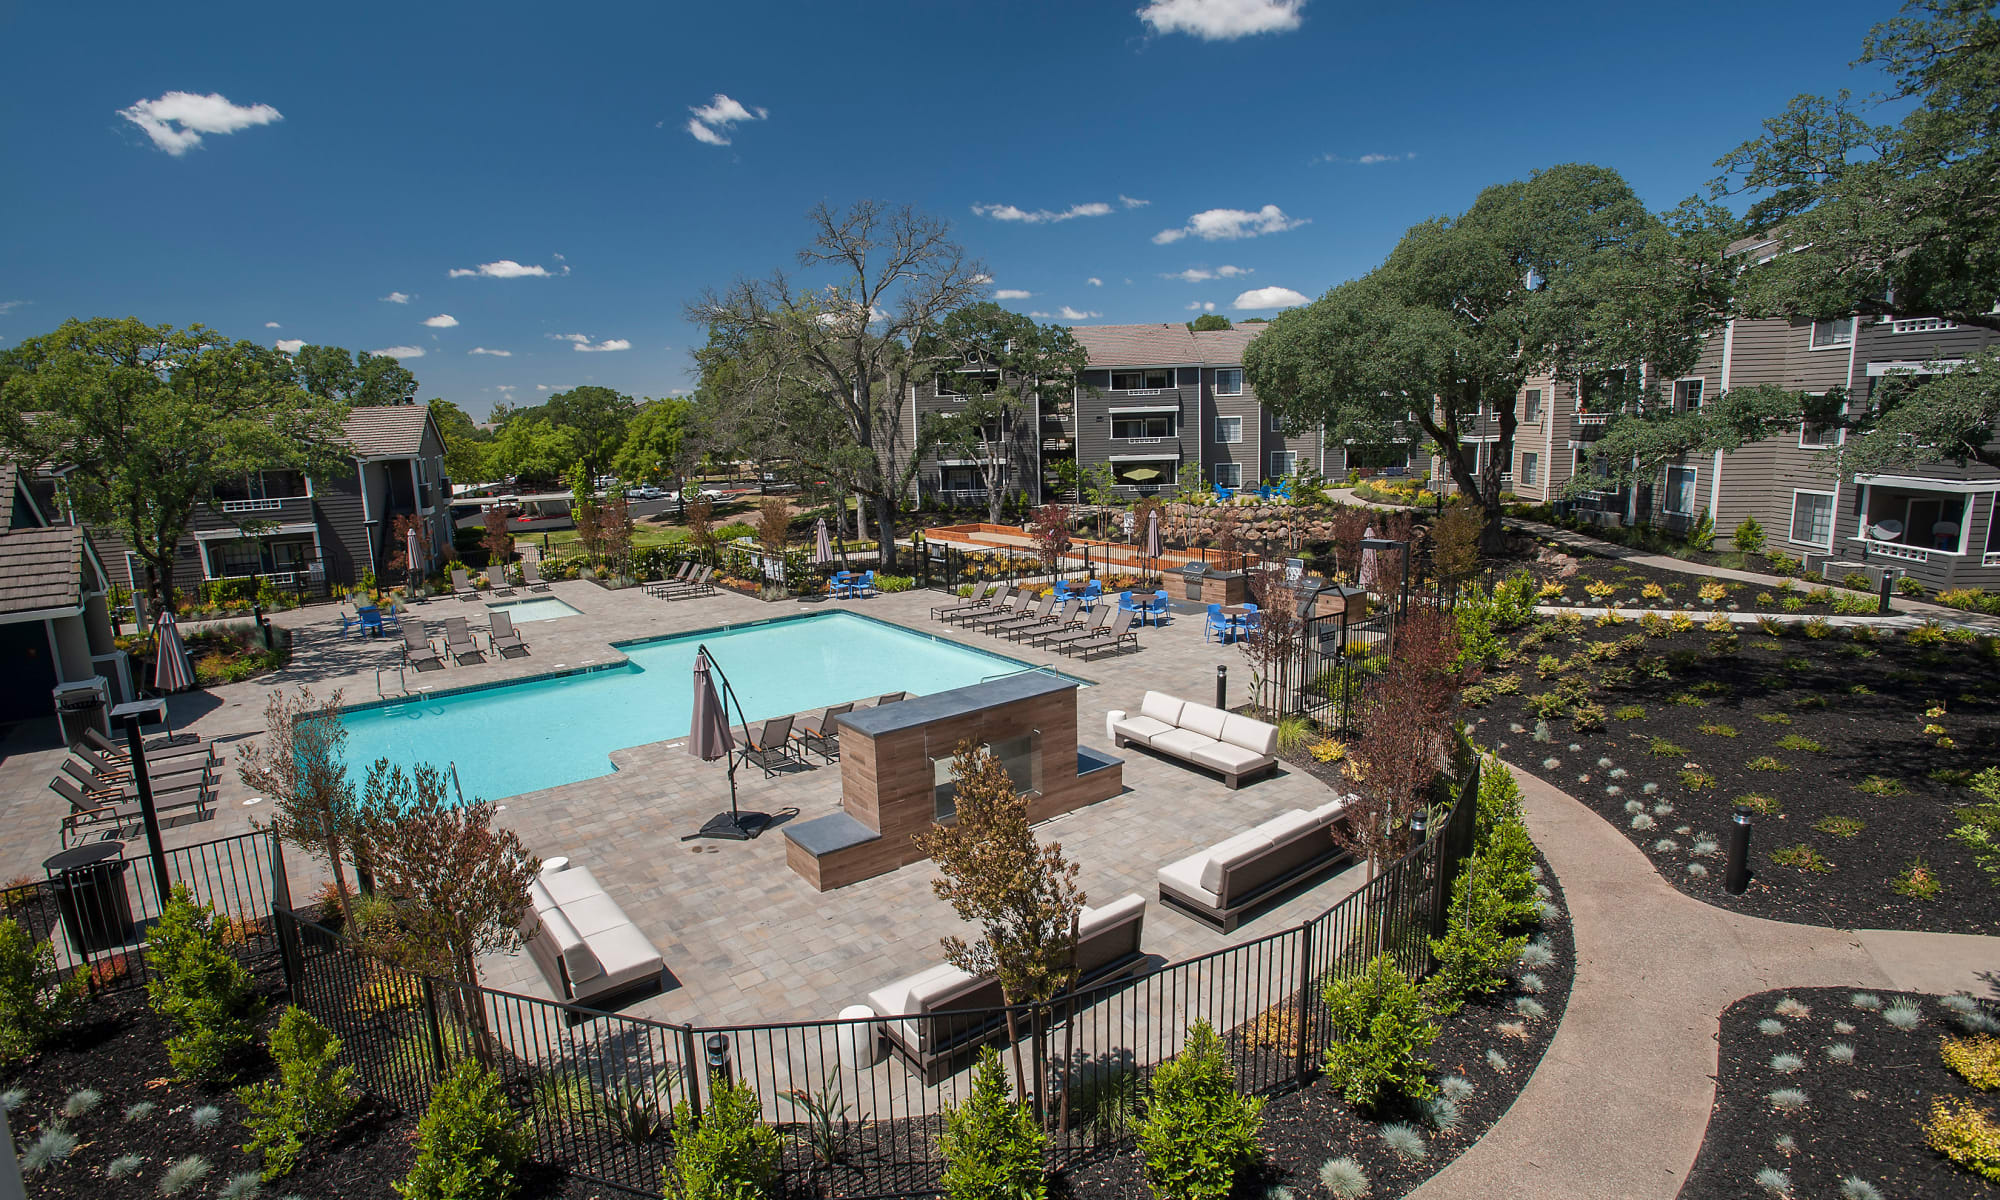 Beautiful landscaping and pool at Slate Creek Apartments in Roseville, California